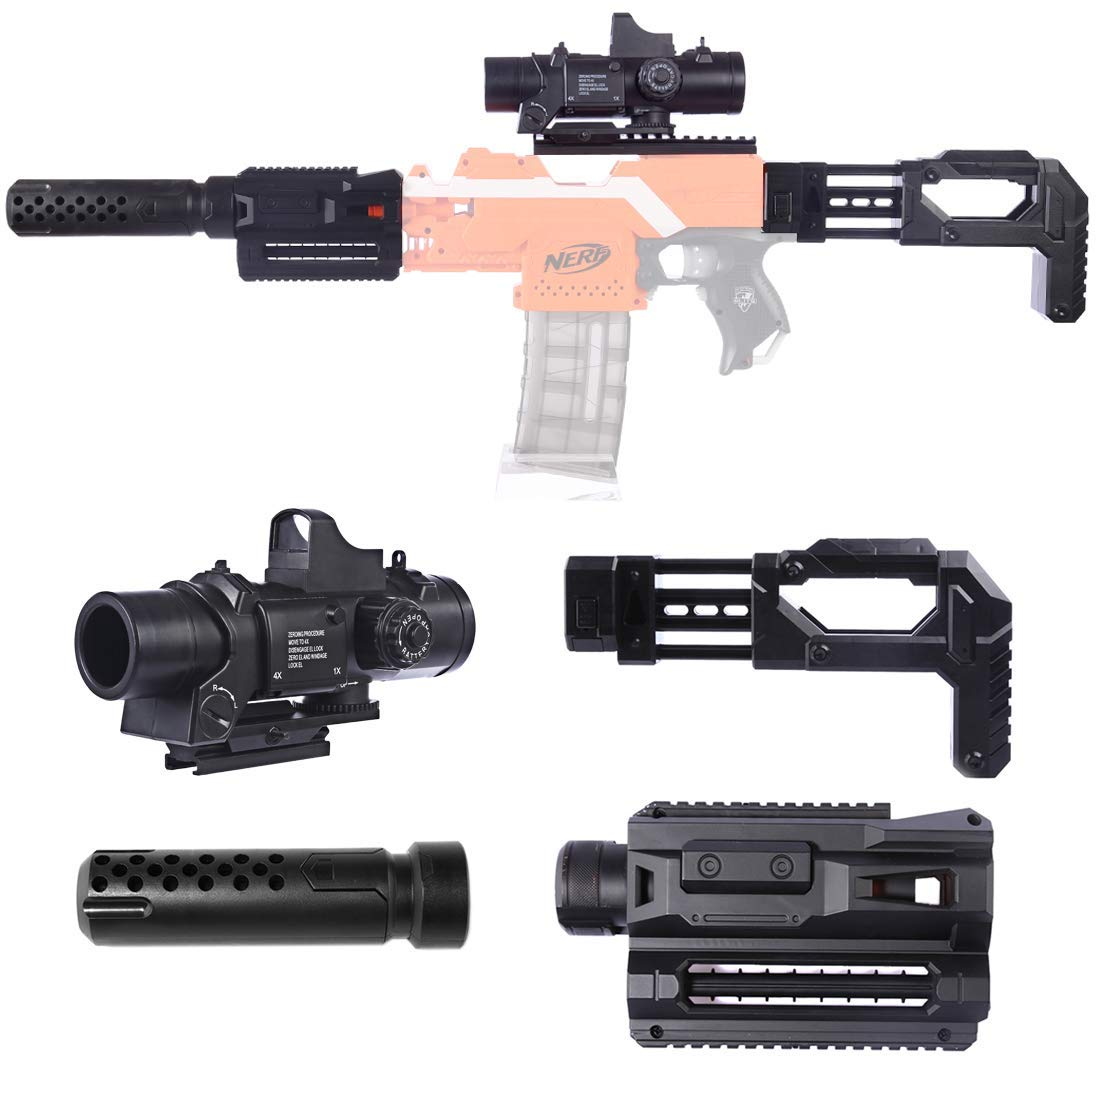 Upgrade Mods Kit For Nerf With 6X Targeting Scope With 7cm Rail  Magazine Clip Holder Deco Silencer Tube Adapter